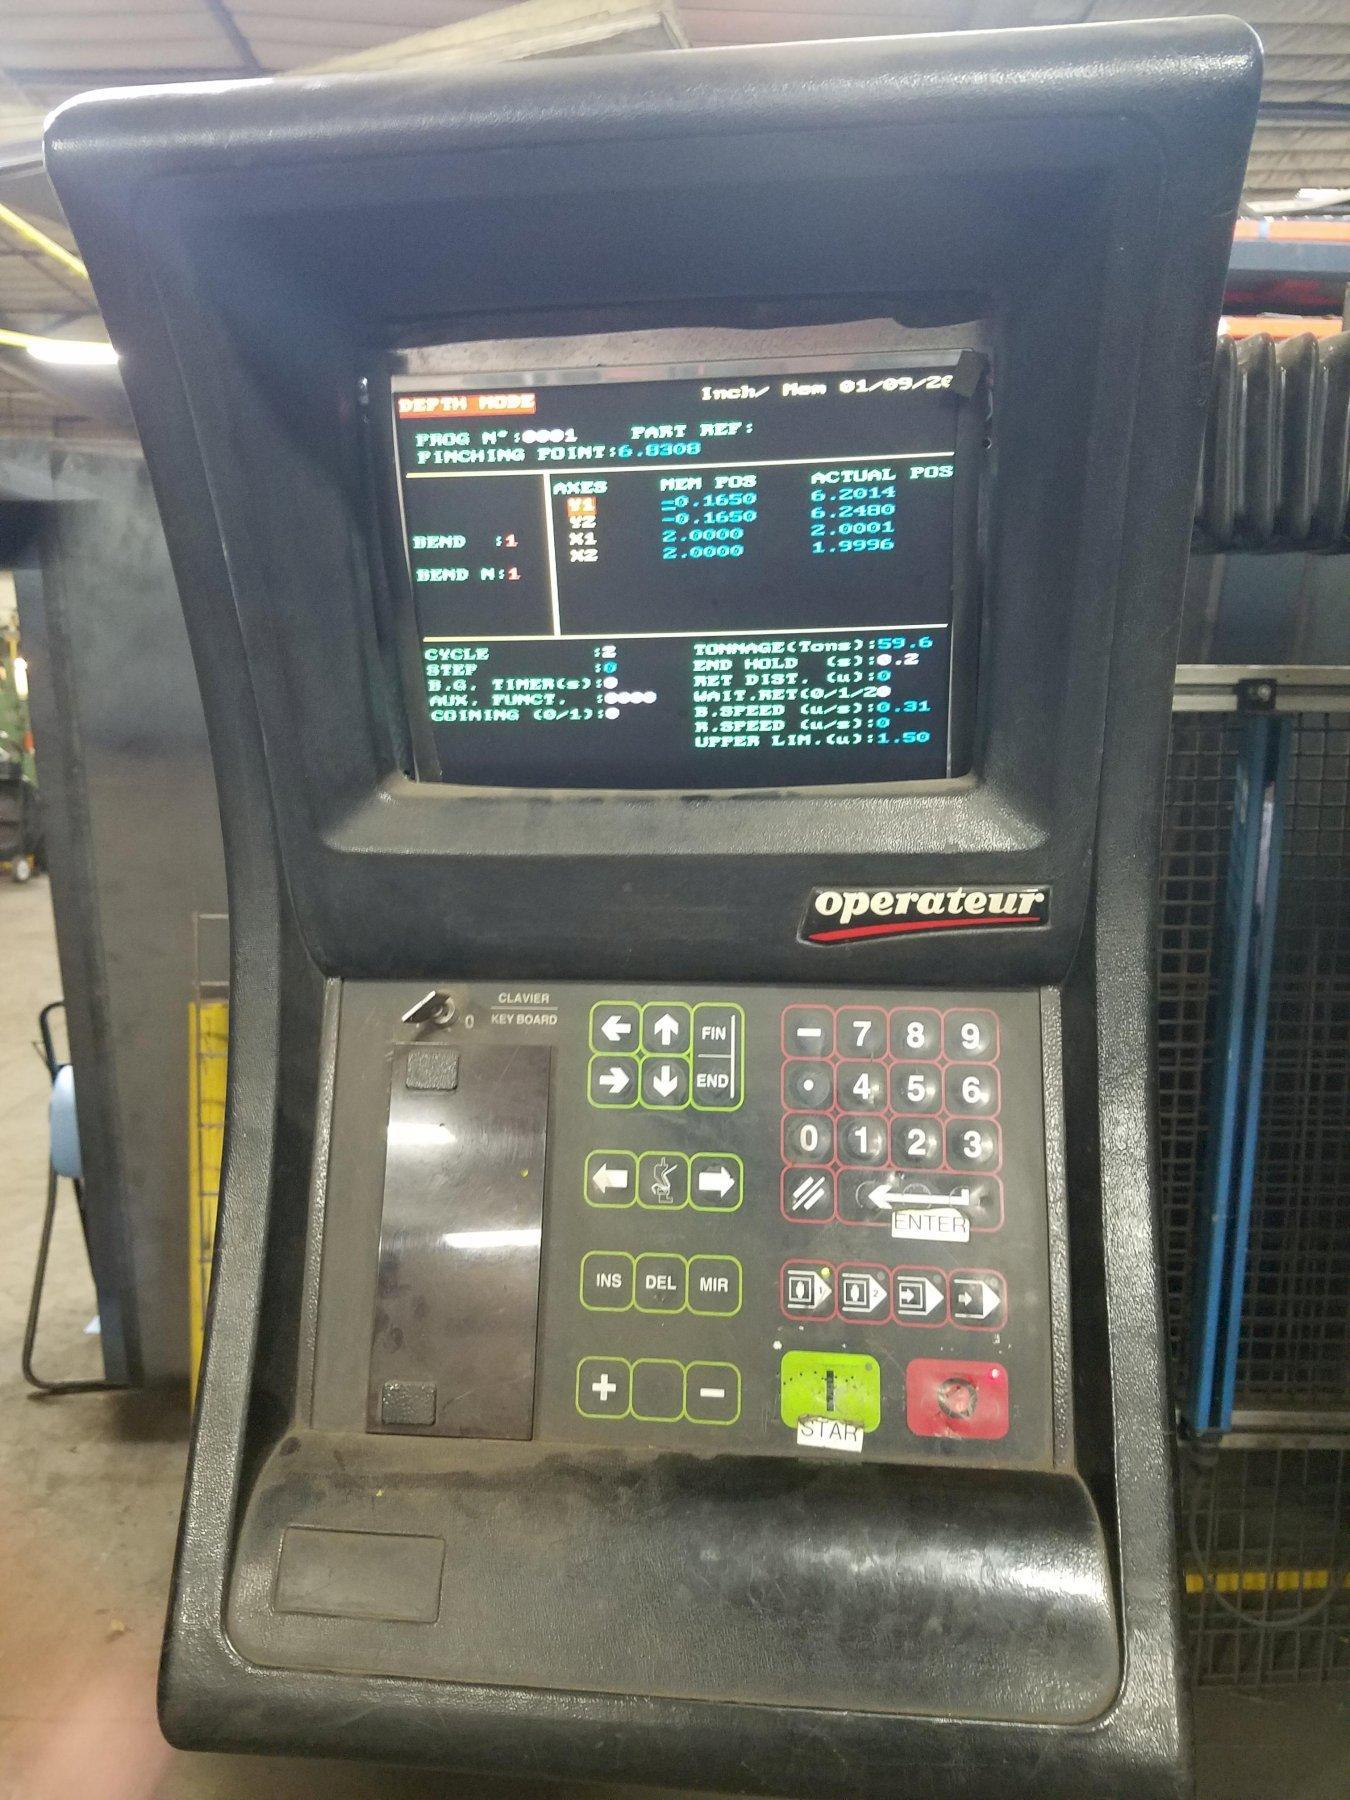 """187 TON AMADA HFB 170-40, 167""""/148"""" LENGTH, OPERATOR 8 AXIS CONTROL, 6 AXIS BACK GAUGE, 4 WORK STOPPERS, 1995"""